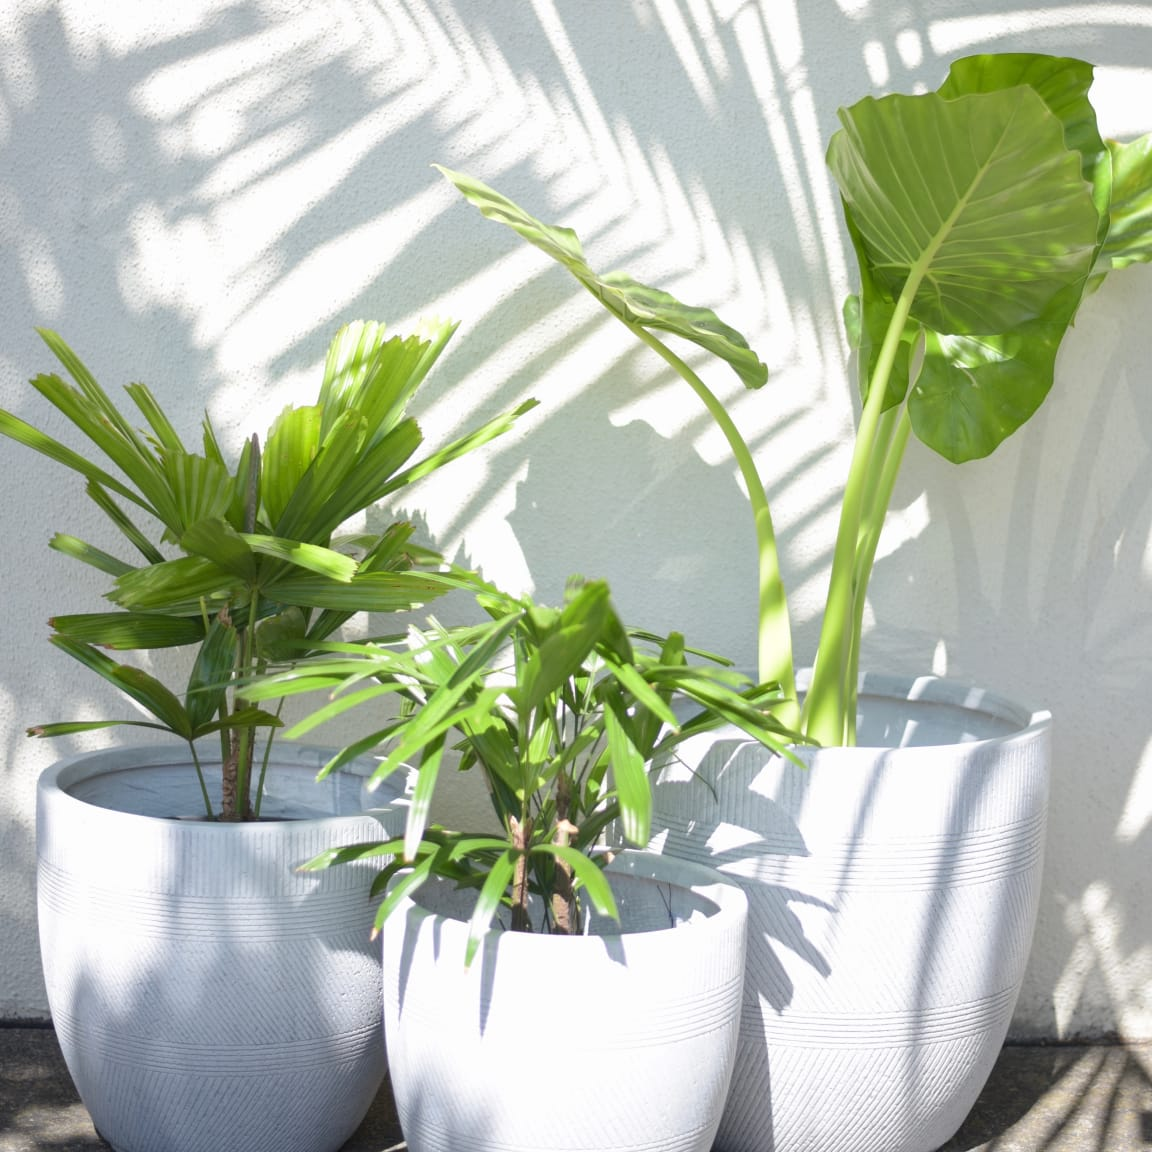 Gro Urban Oasis: 6 essential tips for container gardening